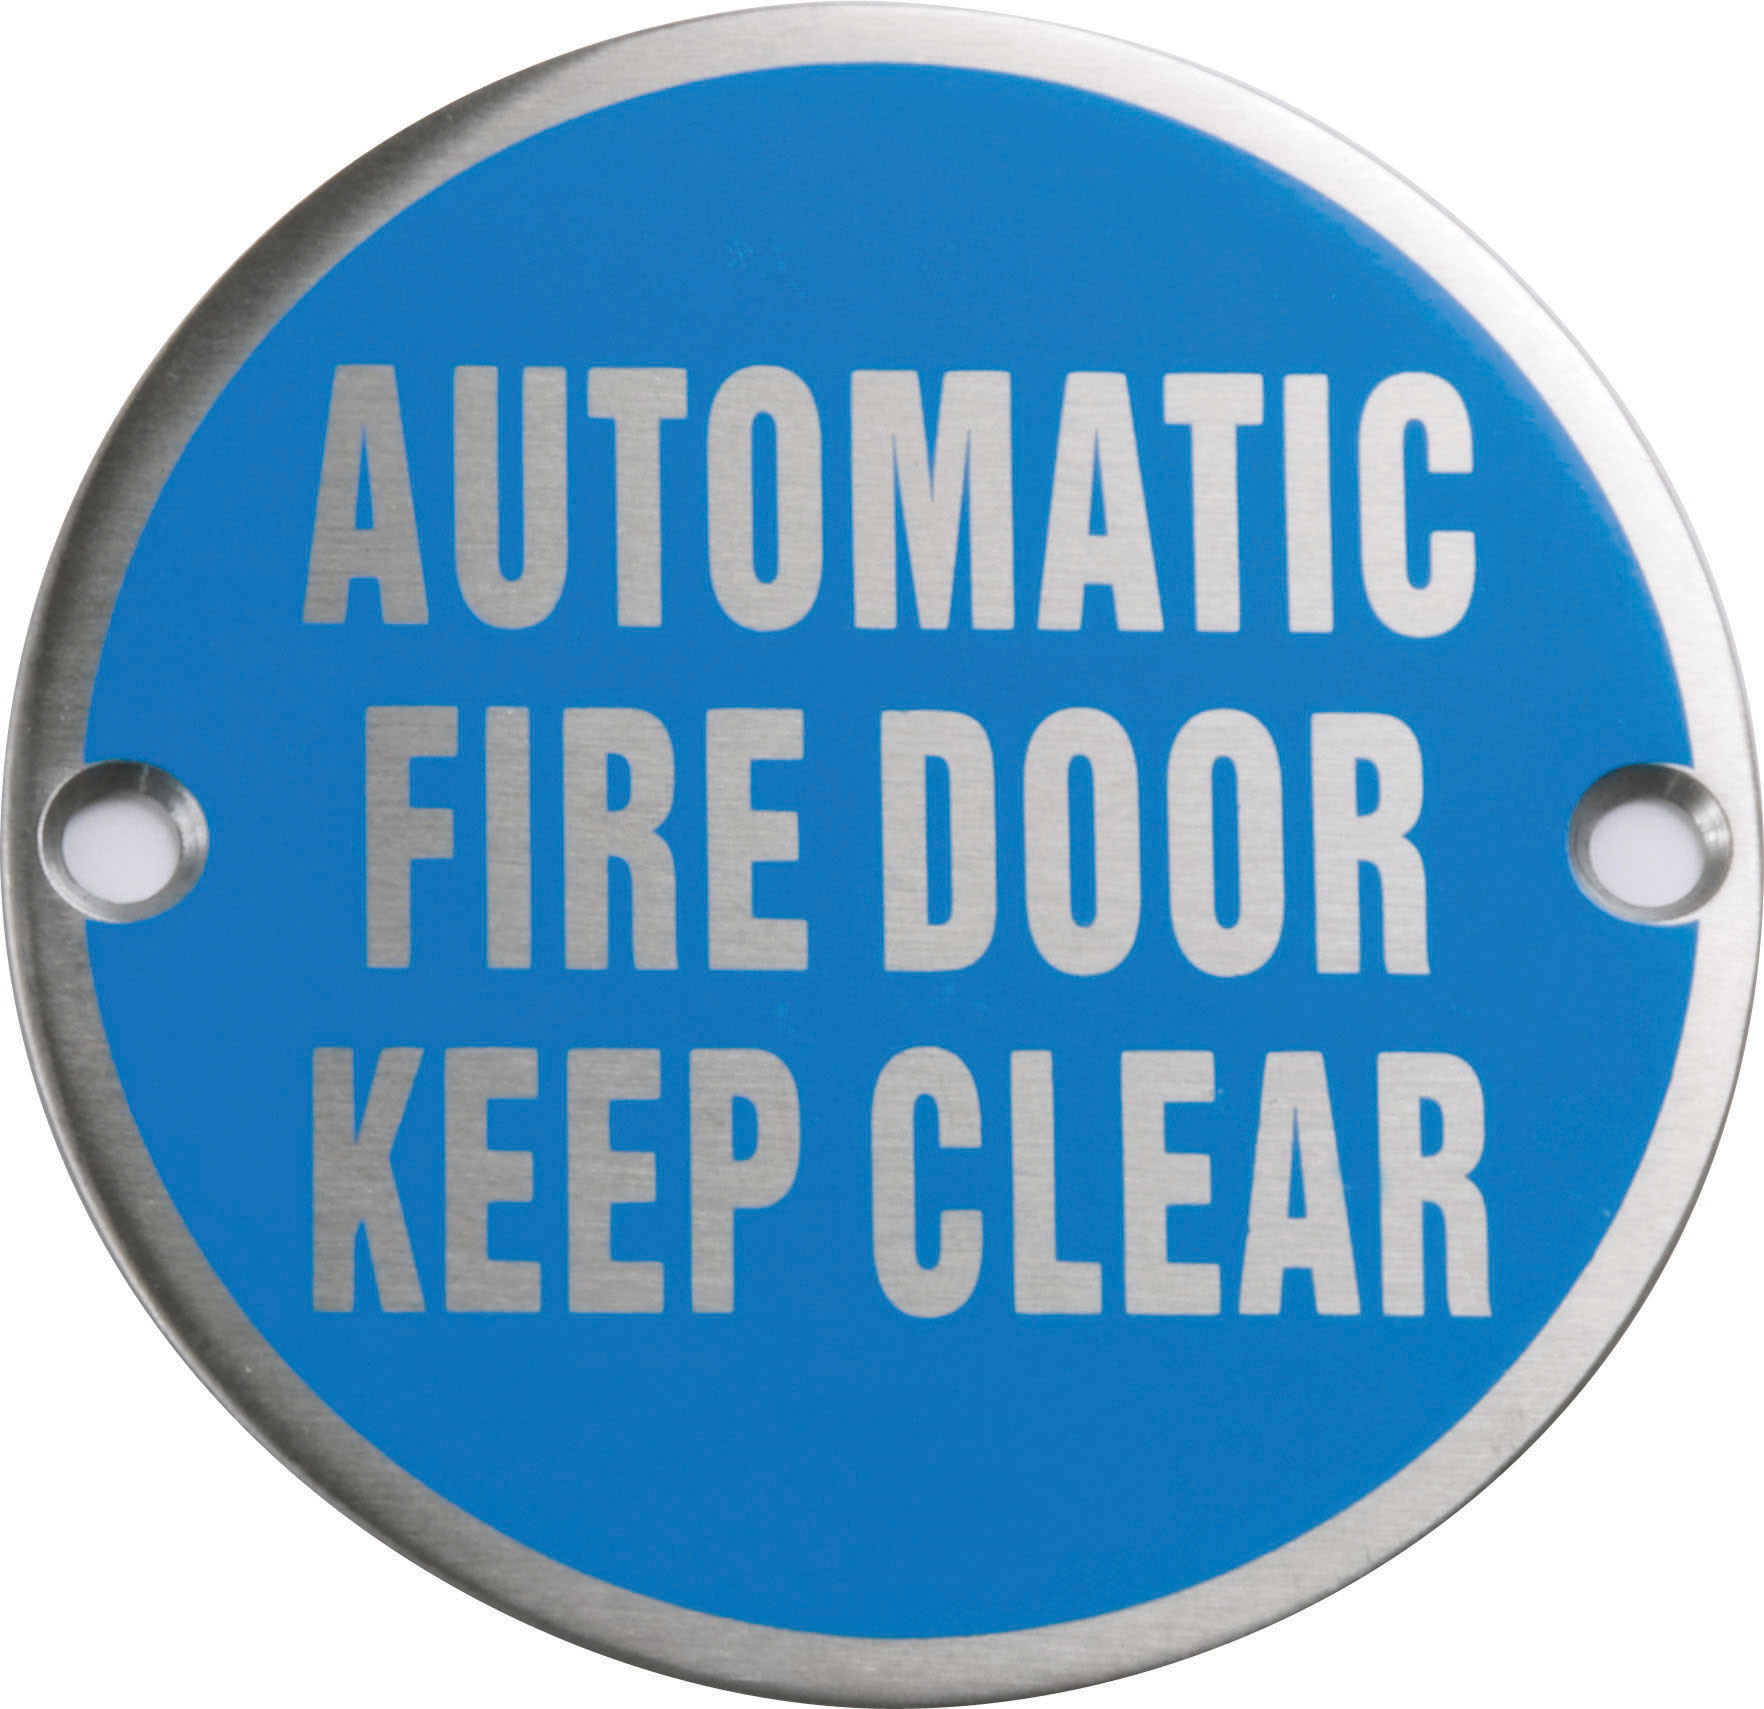 Automatic Fire Doors : Automatic fire door keep clear circular sign tools diy